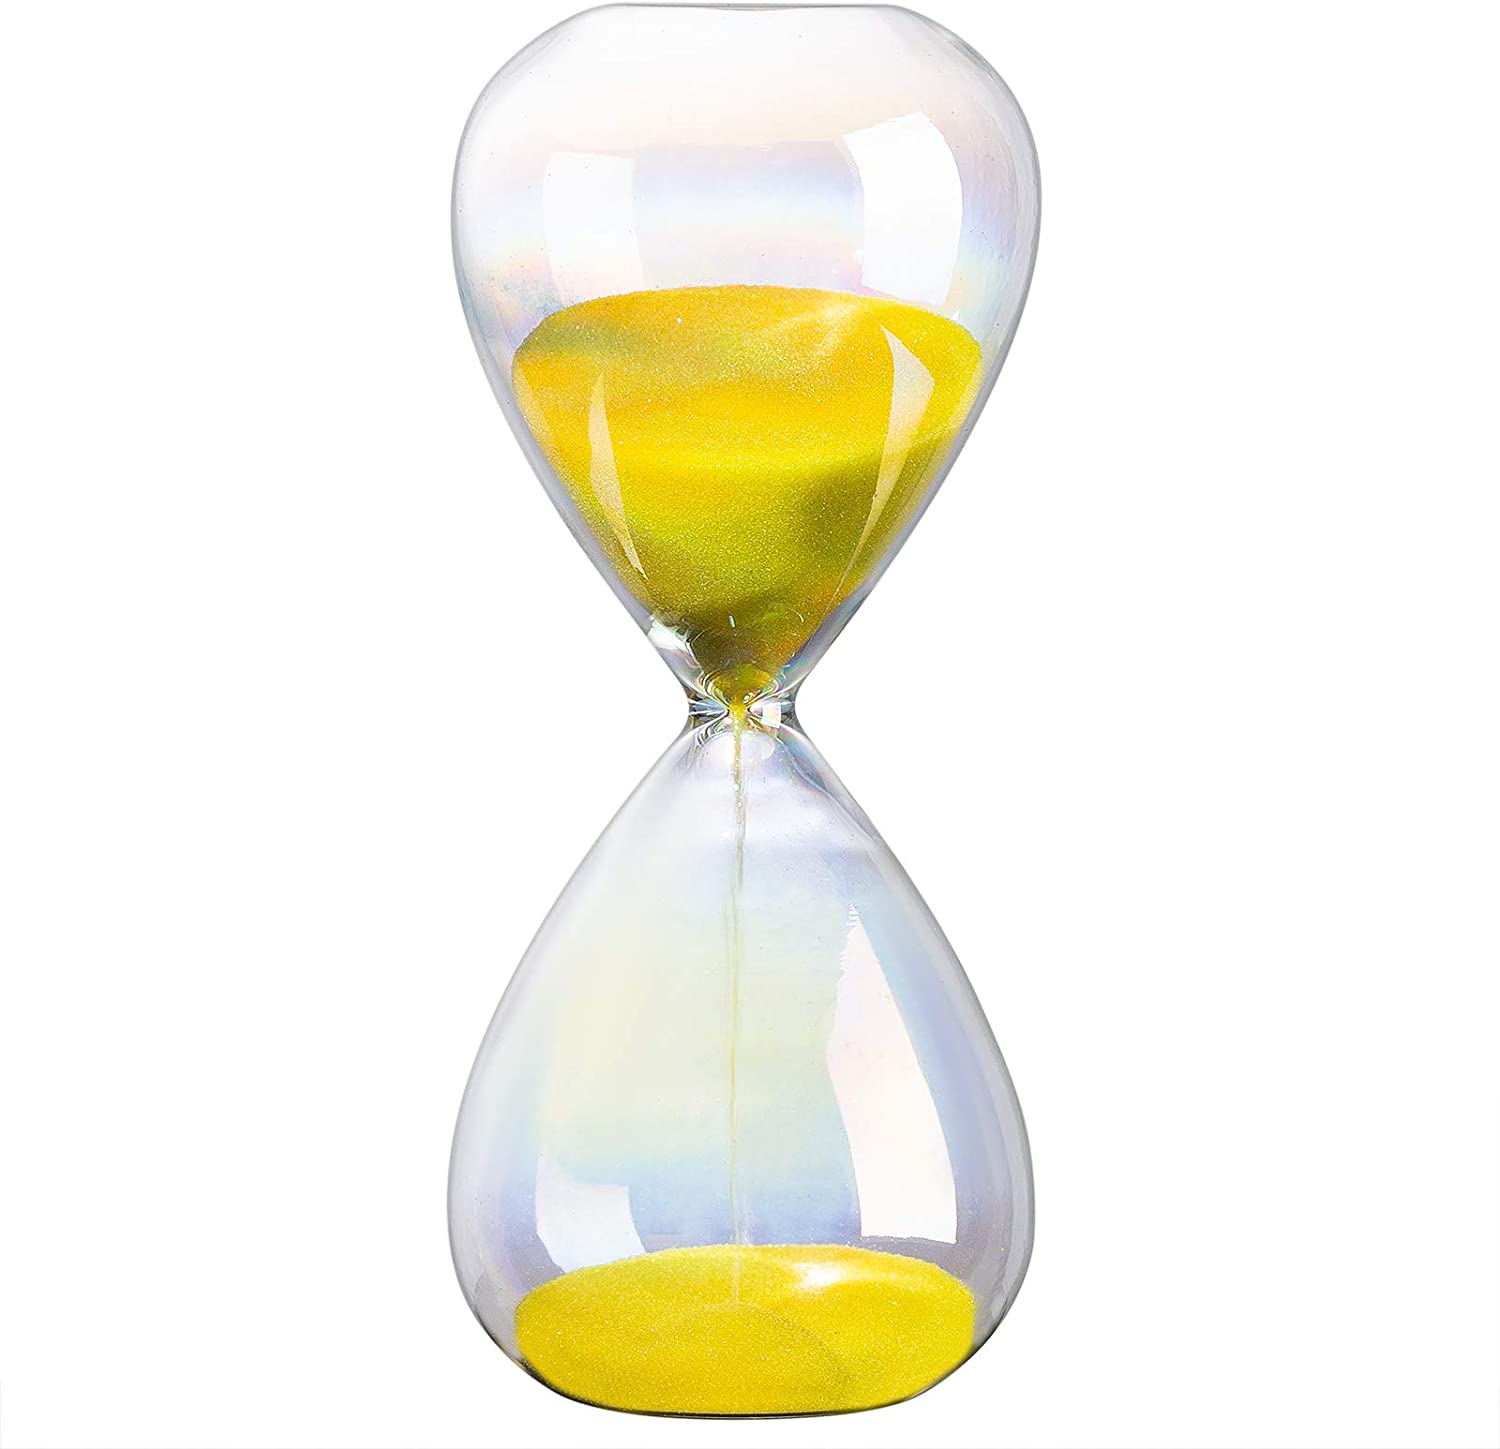 KSMA 3 Minutes Hourglass Sand Timer Transparent Colored Glass,Color Sand - Inspired Glass/Home,Desk, Office Decor(3,5,10,15,30,60 Minutes)